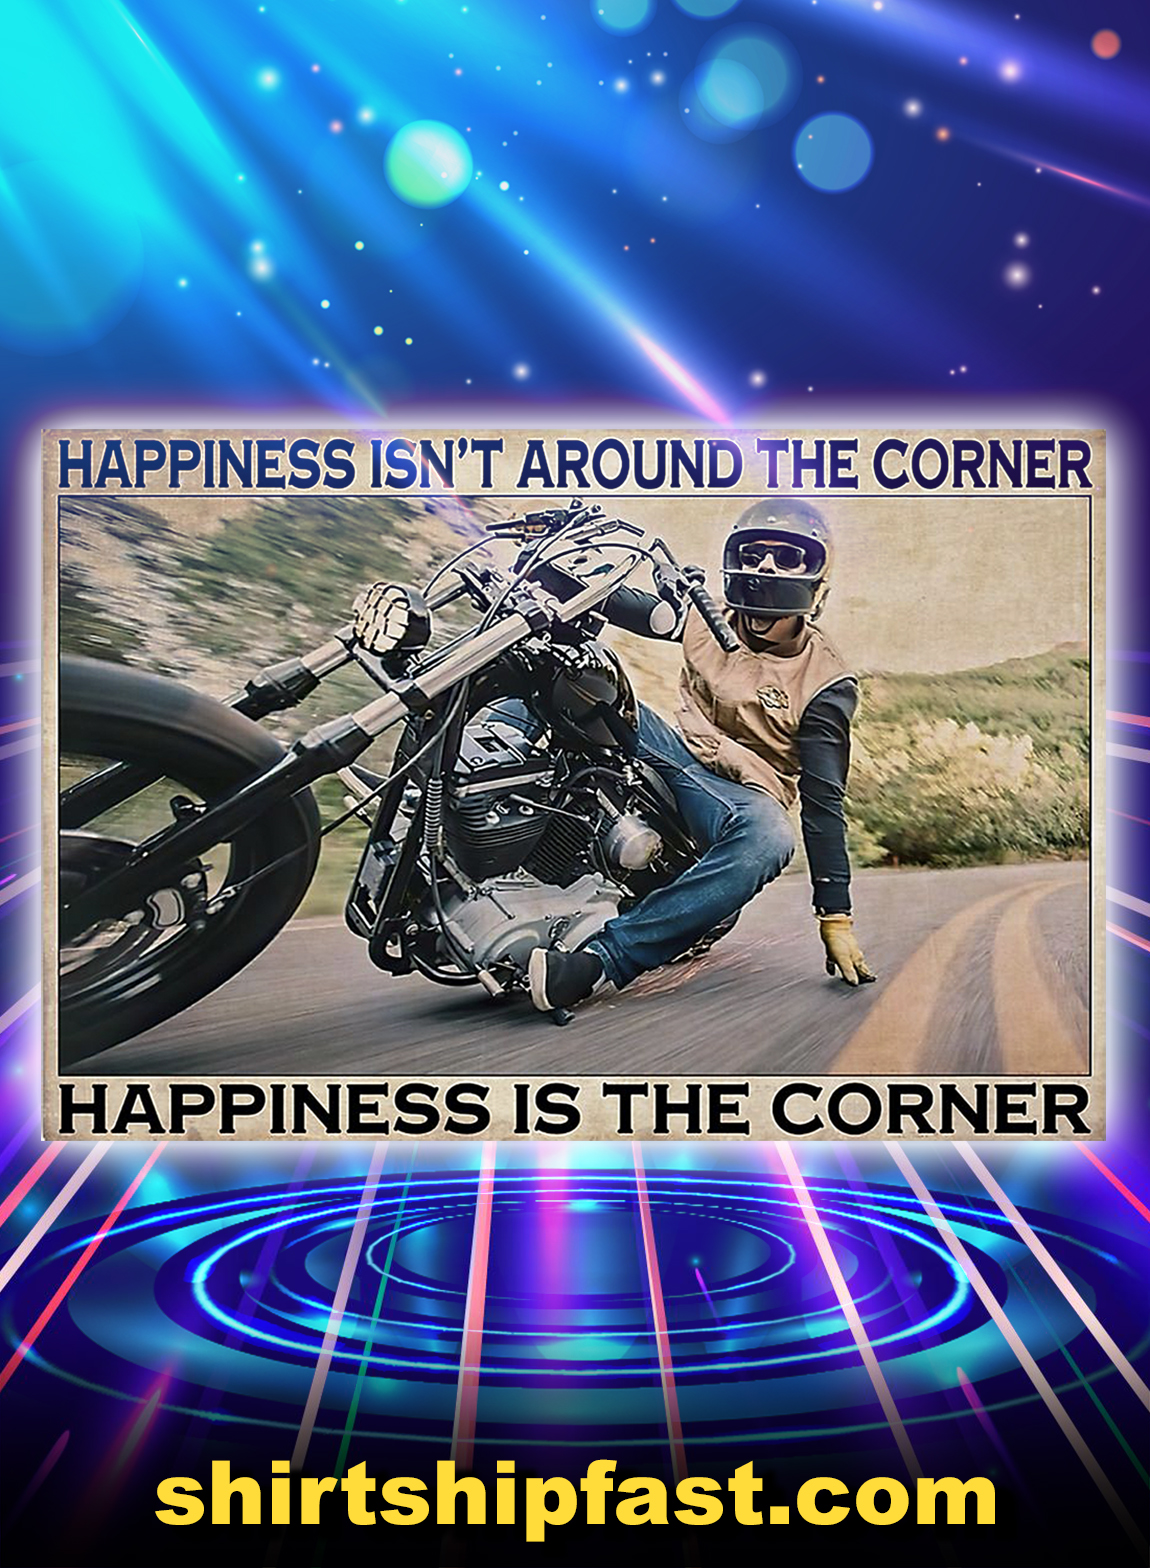 Corner Motorcycle happiness isn't around the corner poster - A3